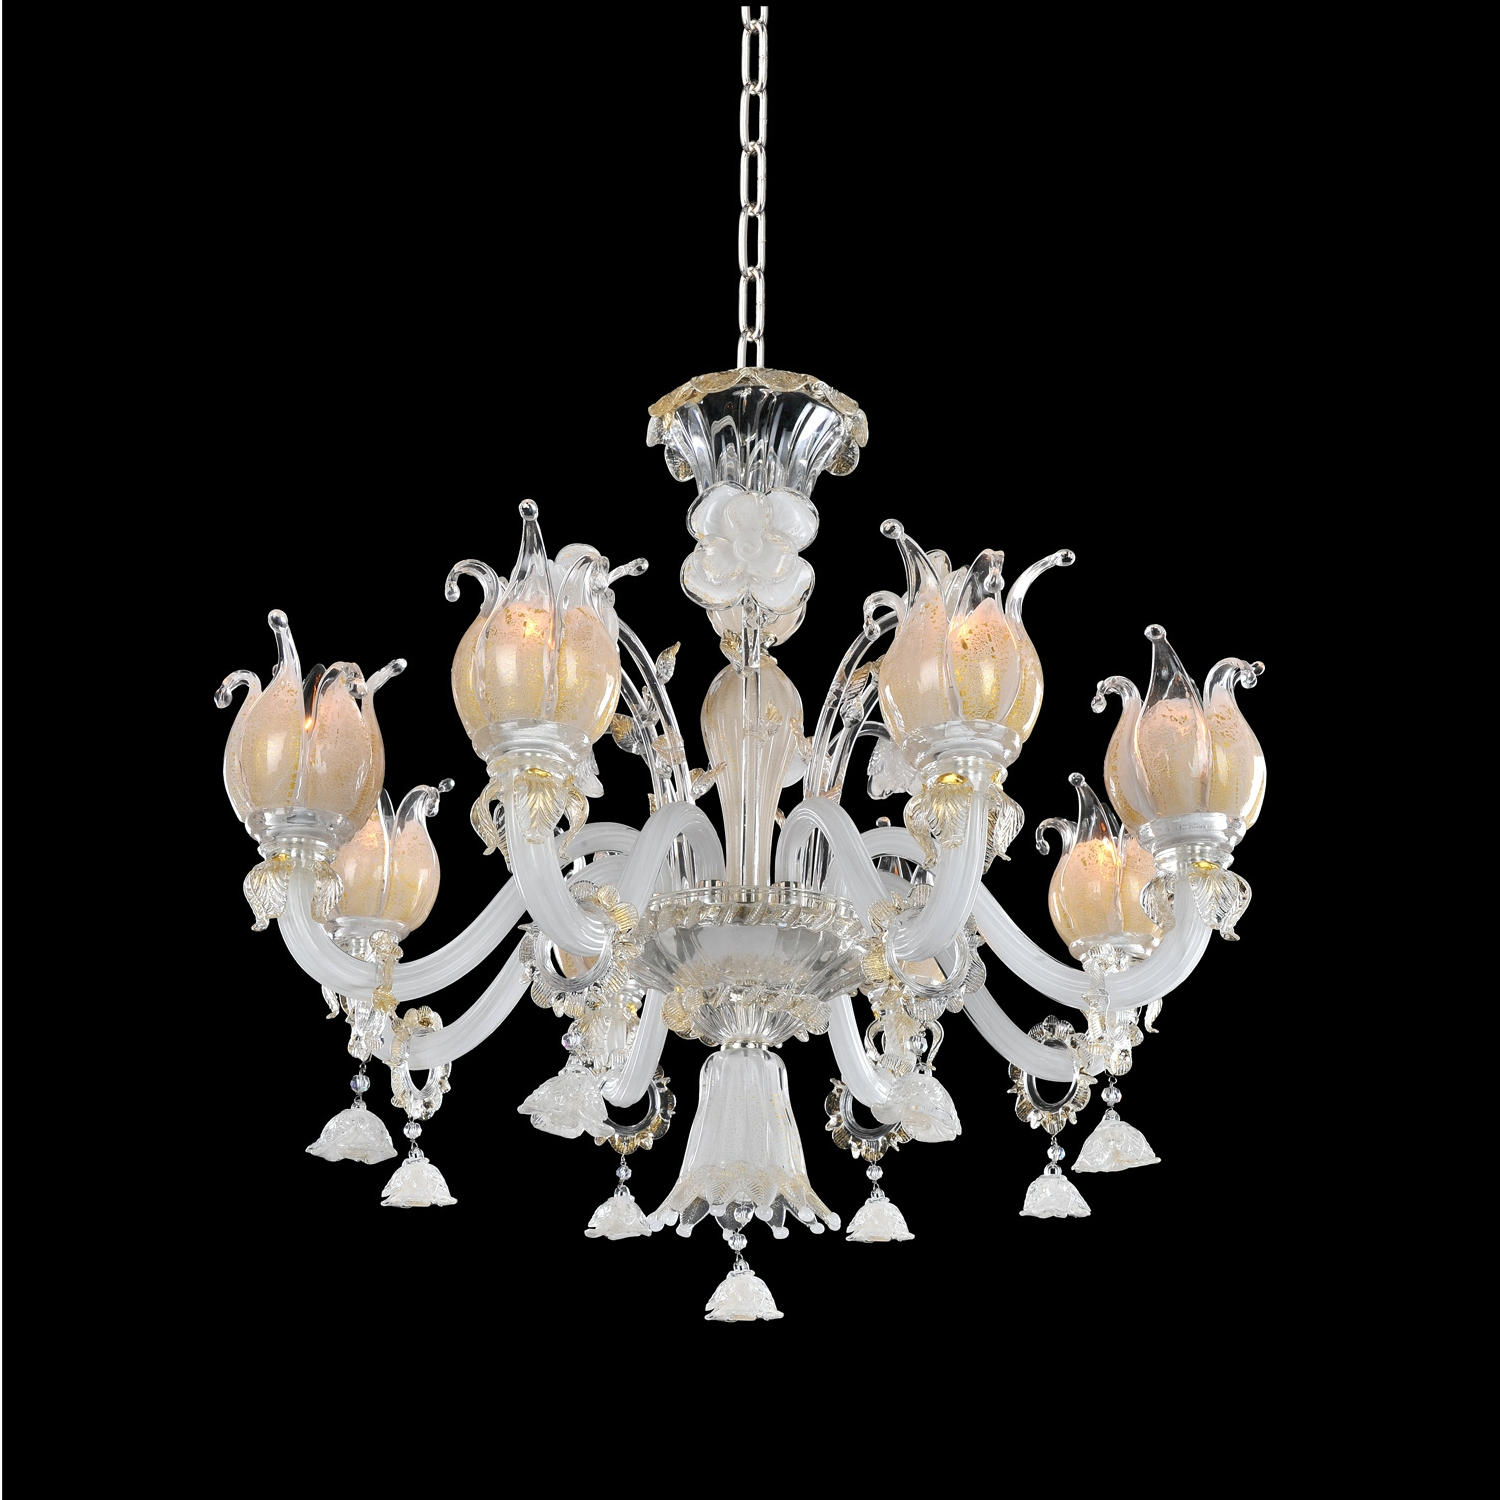 Artemisia 8 Light Chandelier